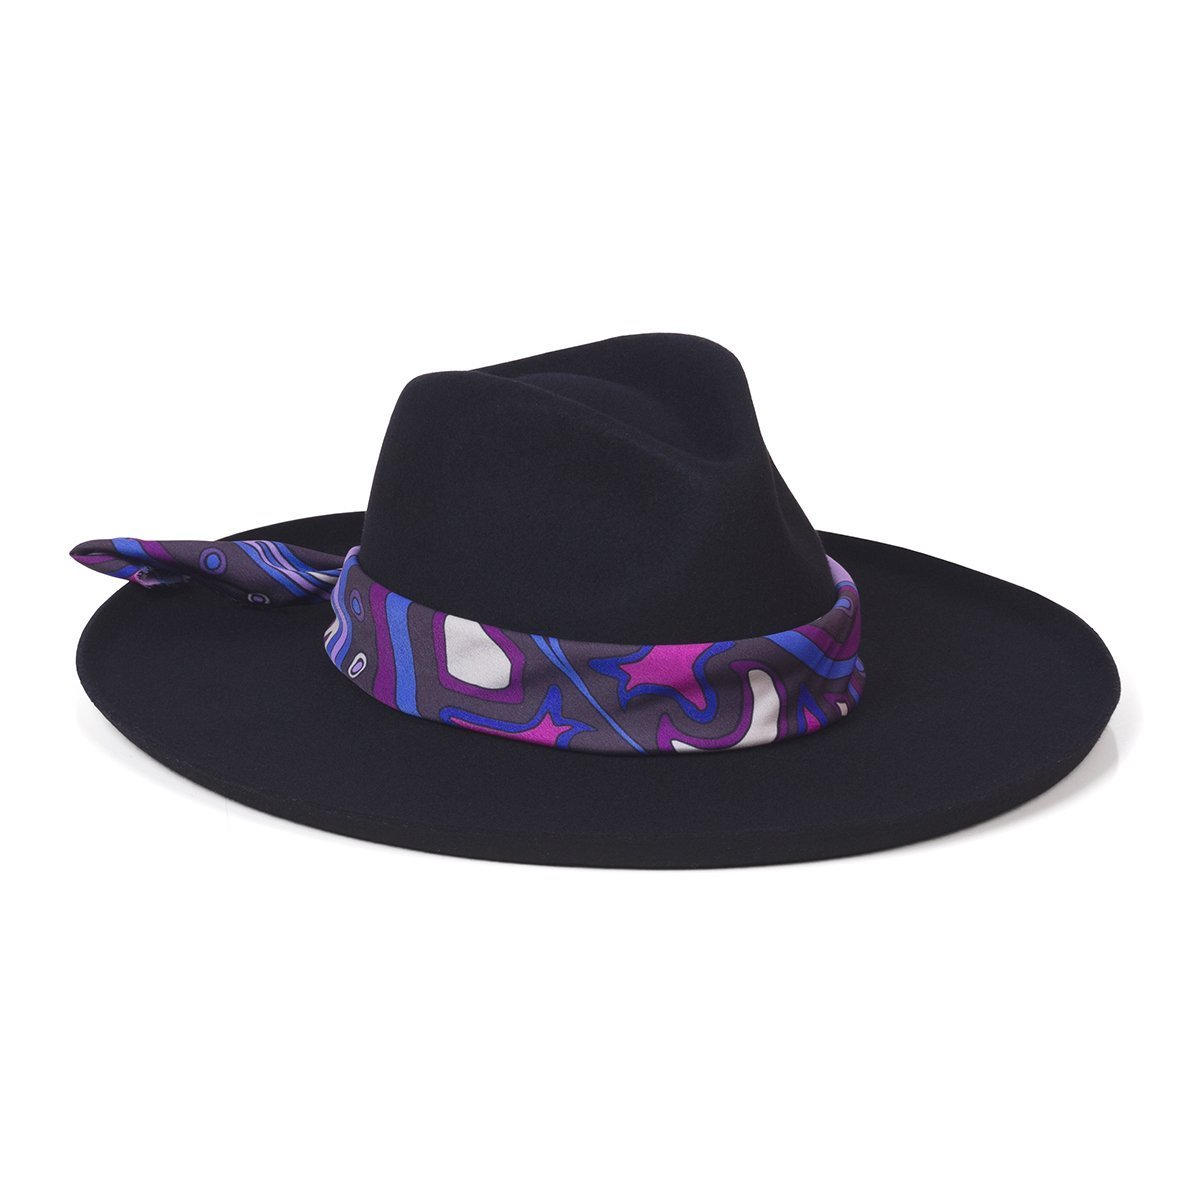 Melodic Fedora - Black | Lack of Color Women's Hats